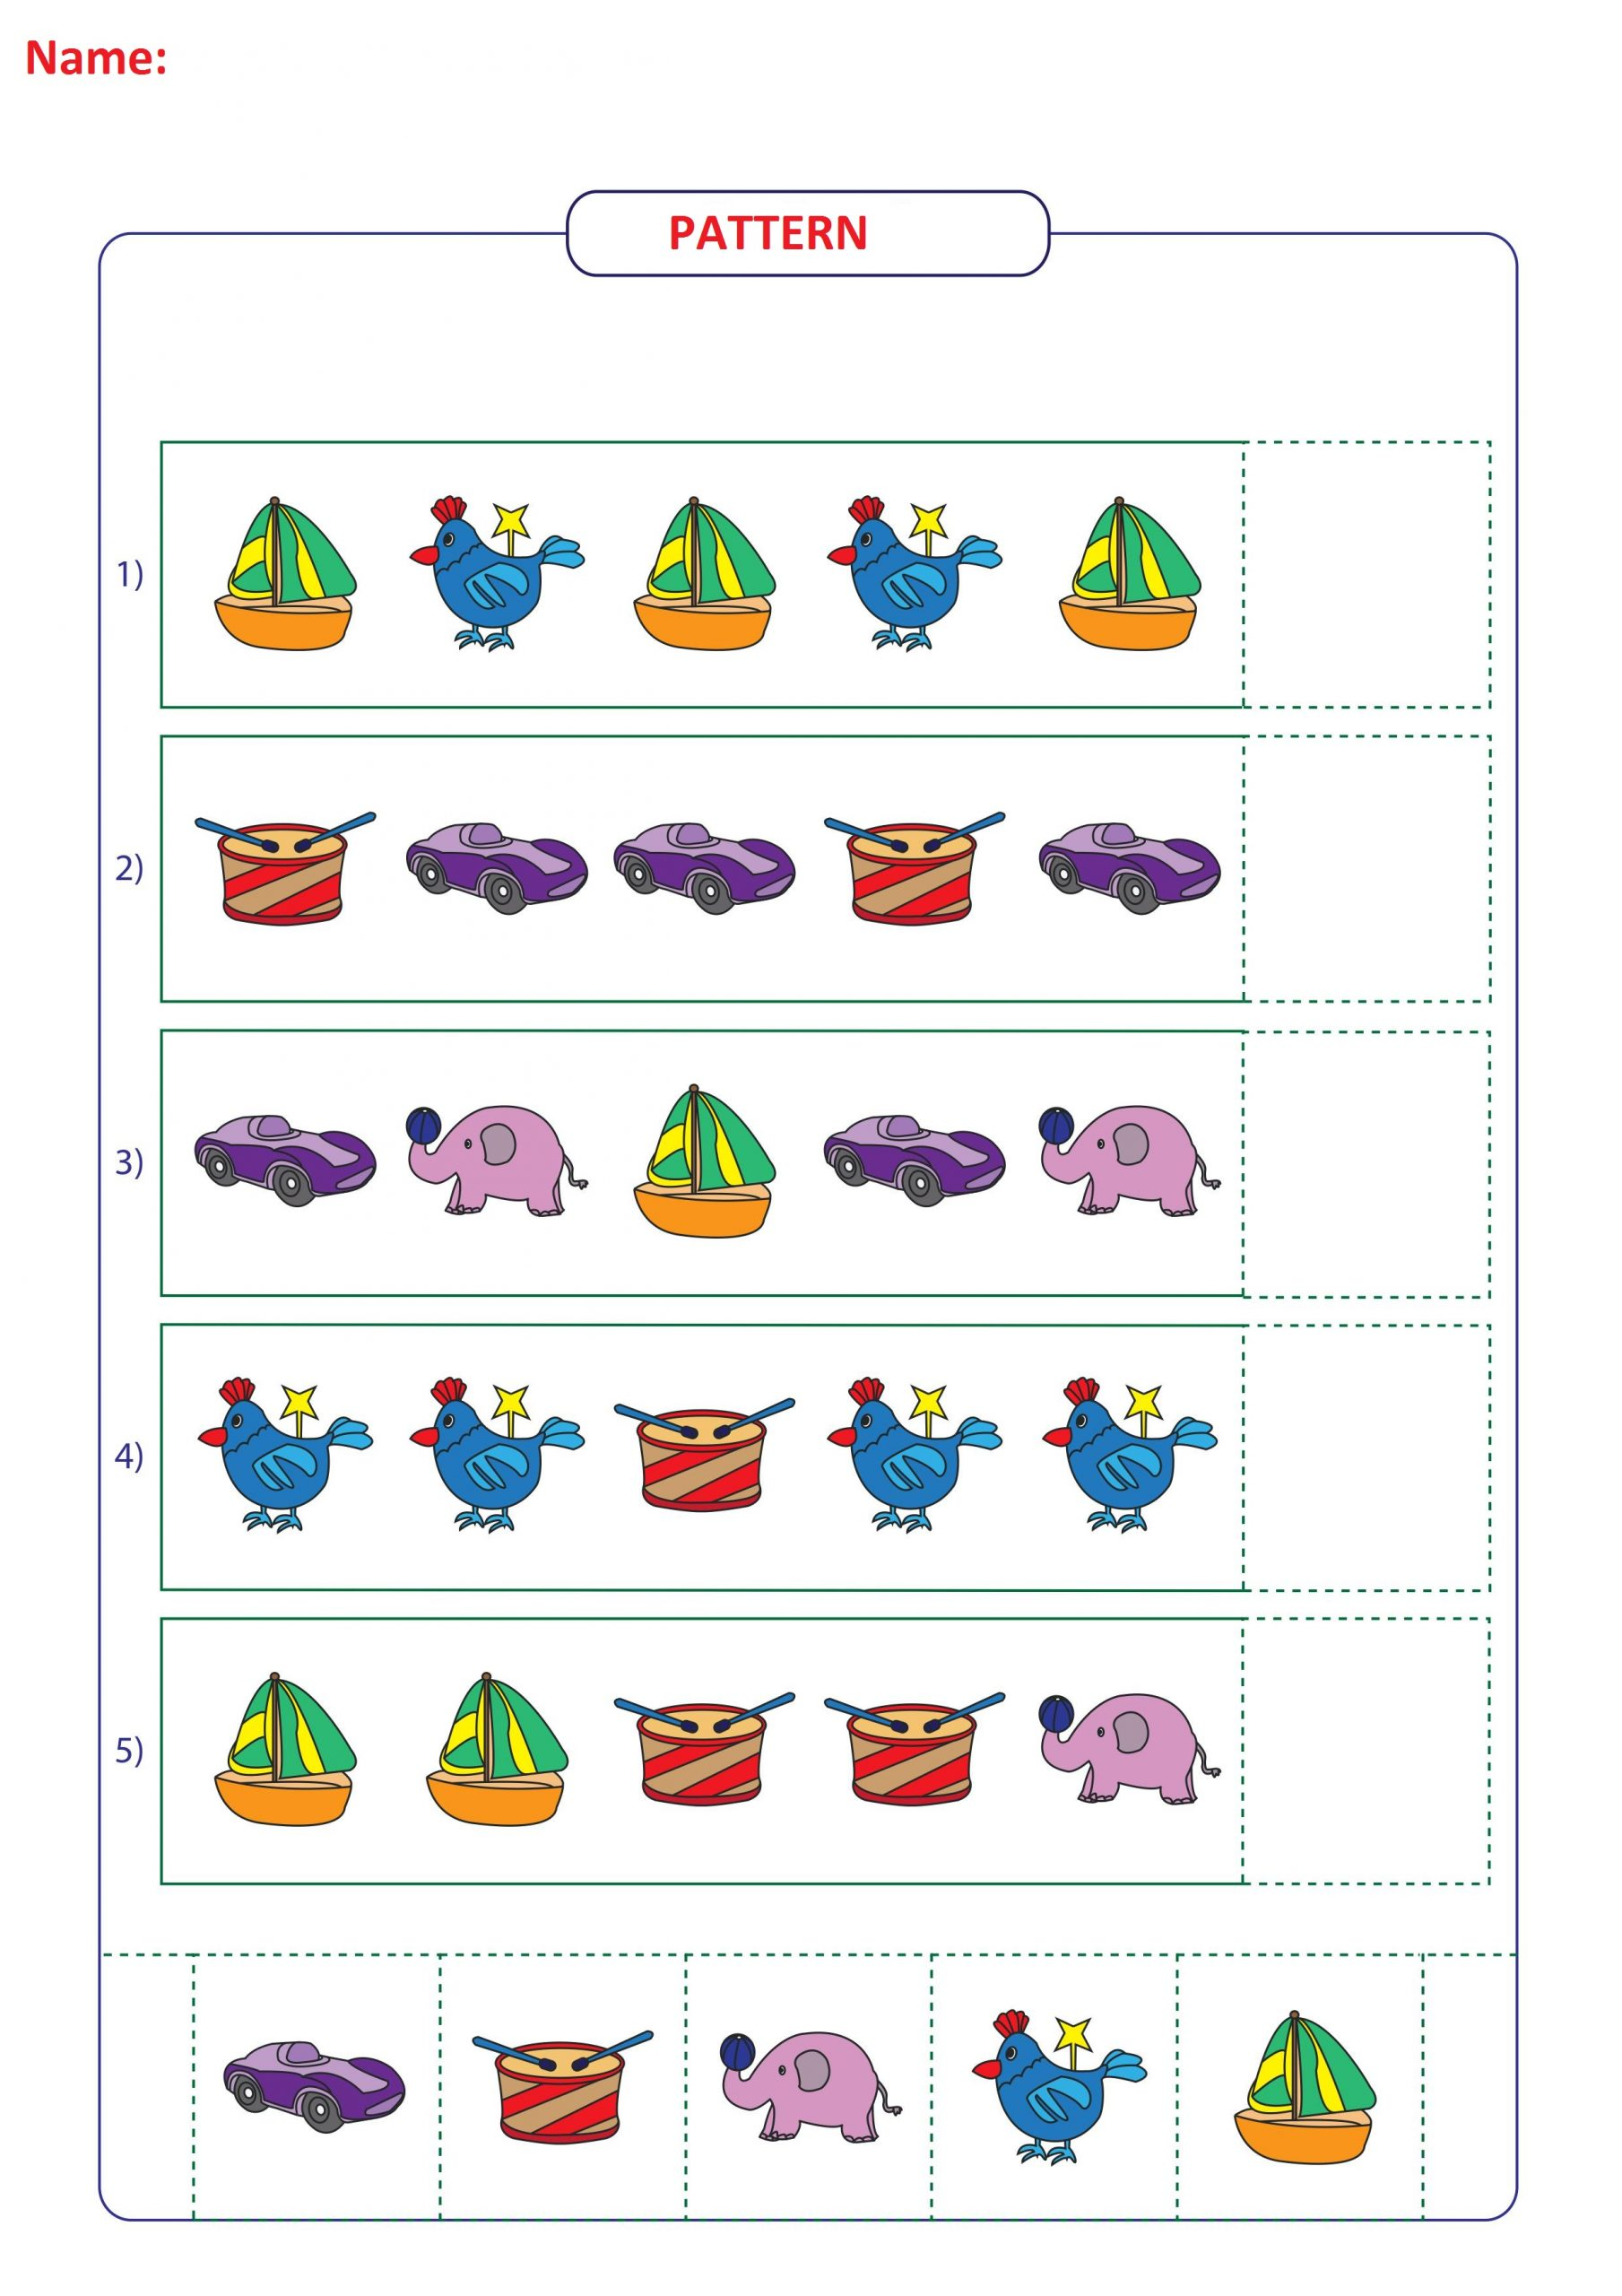 hight resolution of Non Linear Pattern Worksheet   Printable Worksheets and Activities for  Teachers